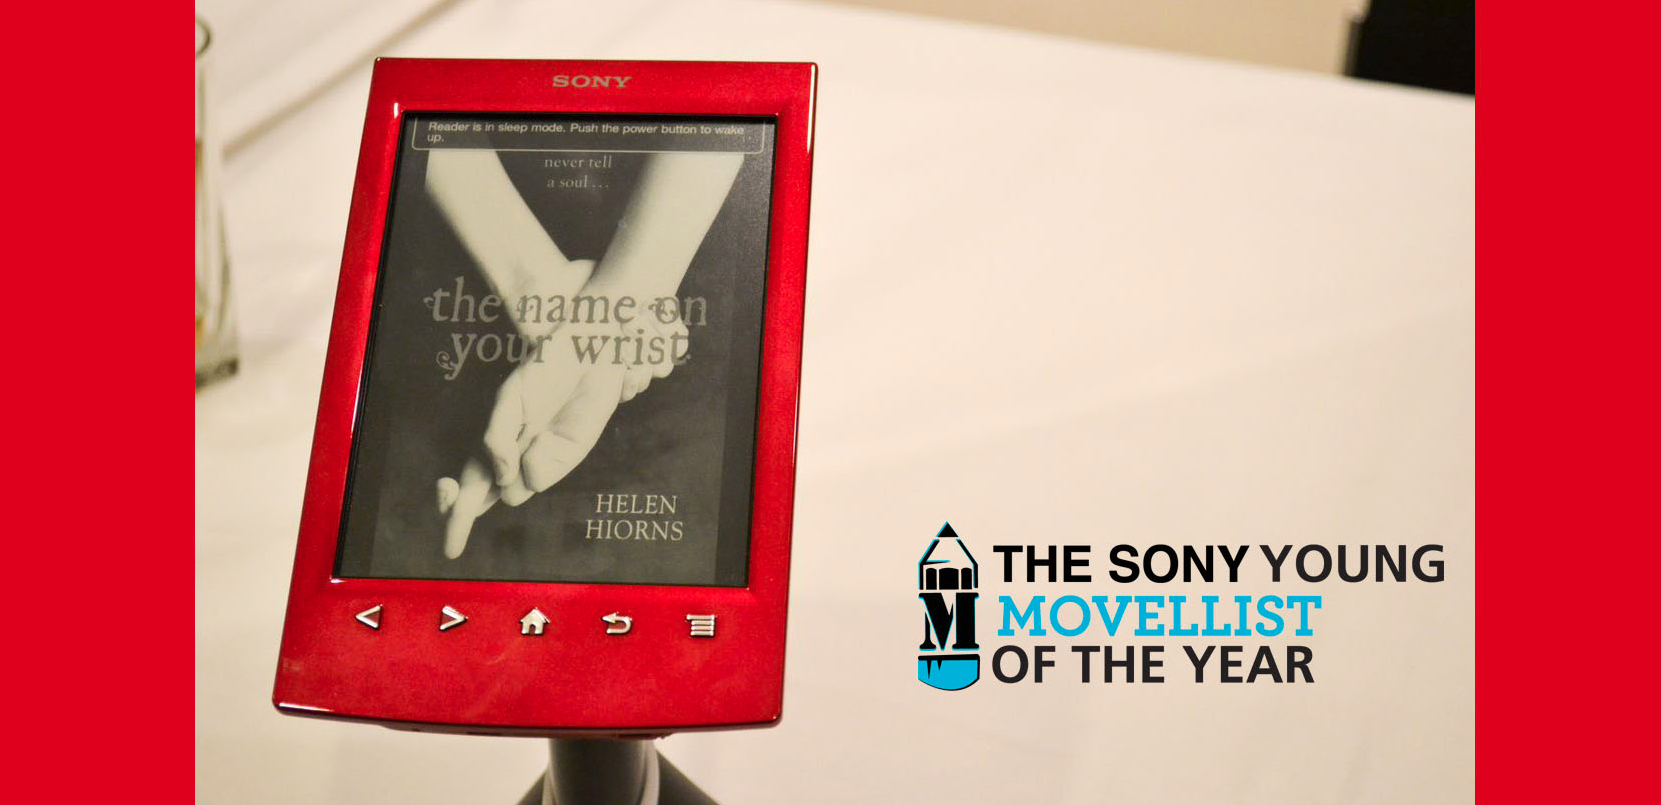 The Sony Young Movellist: The Winner